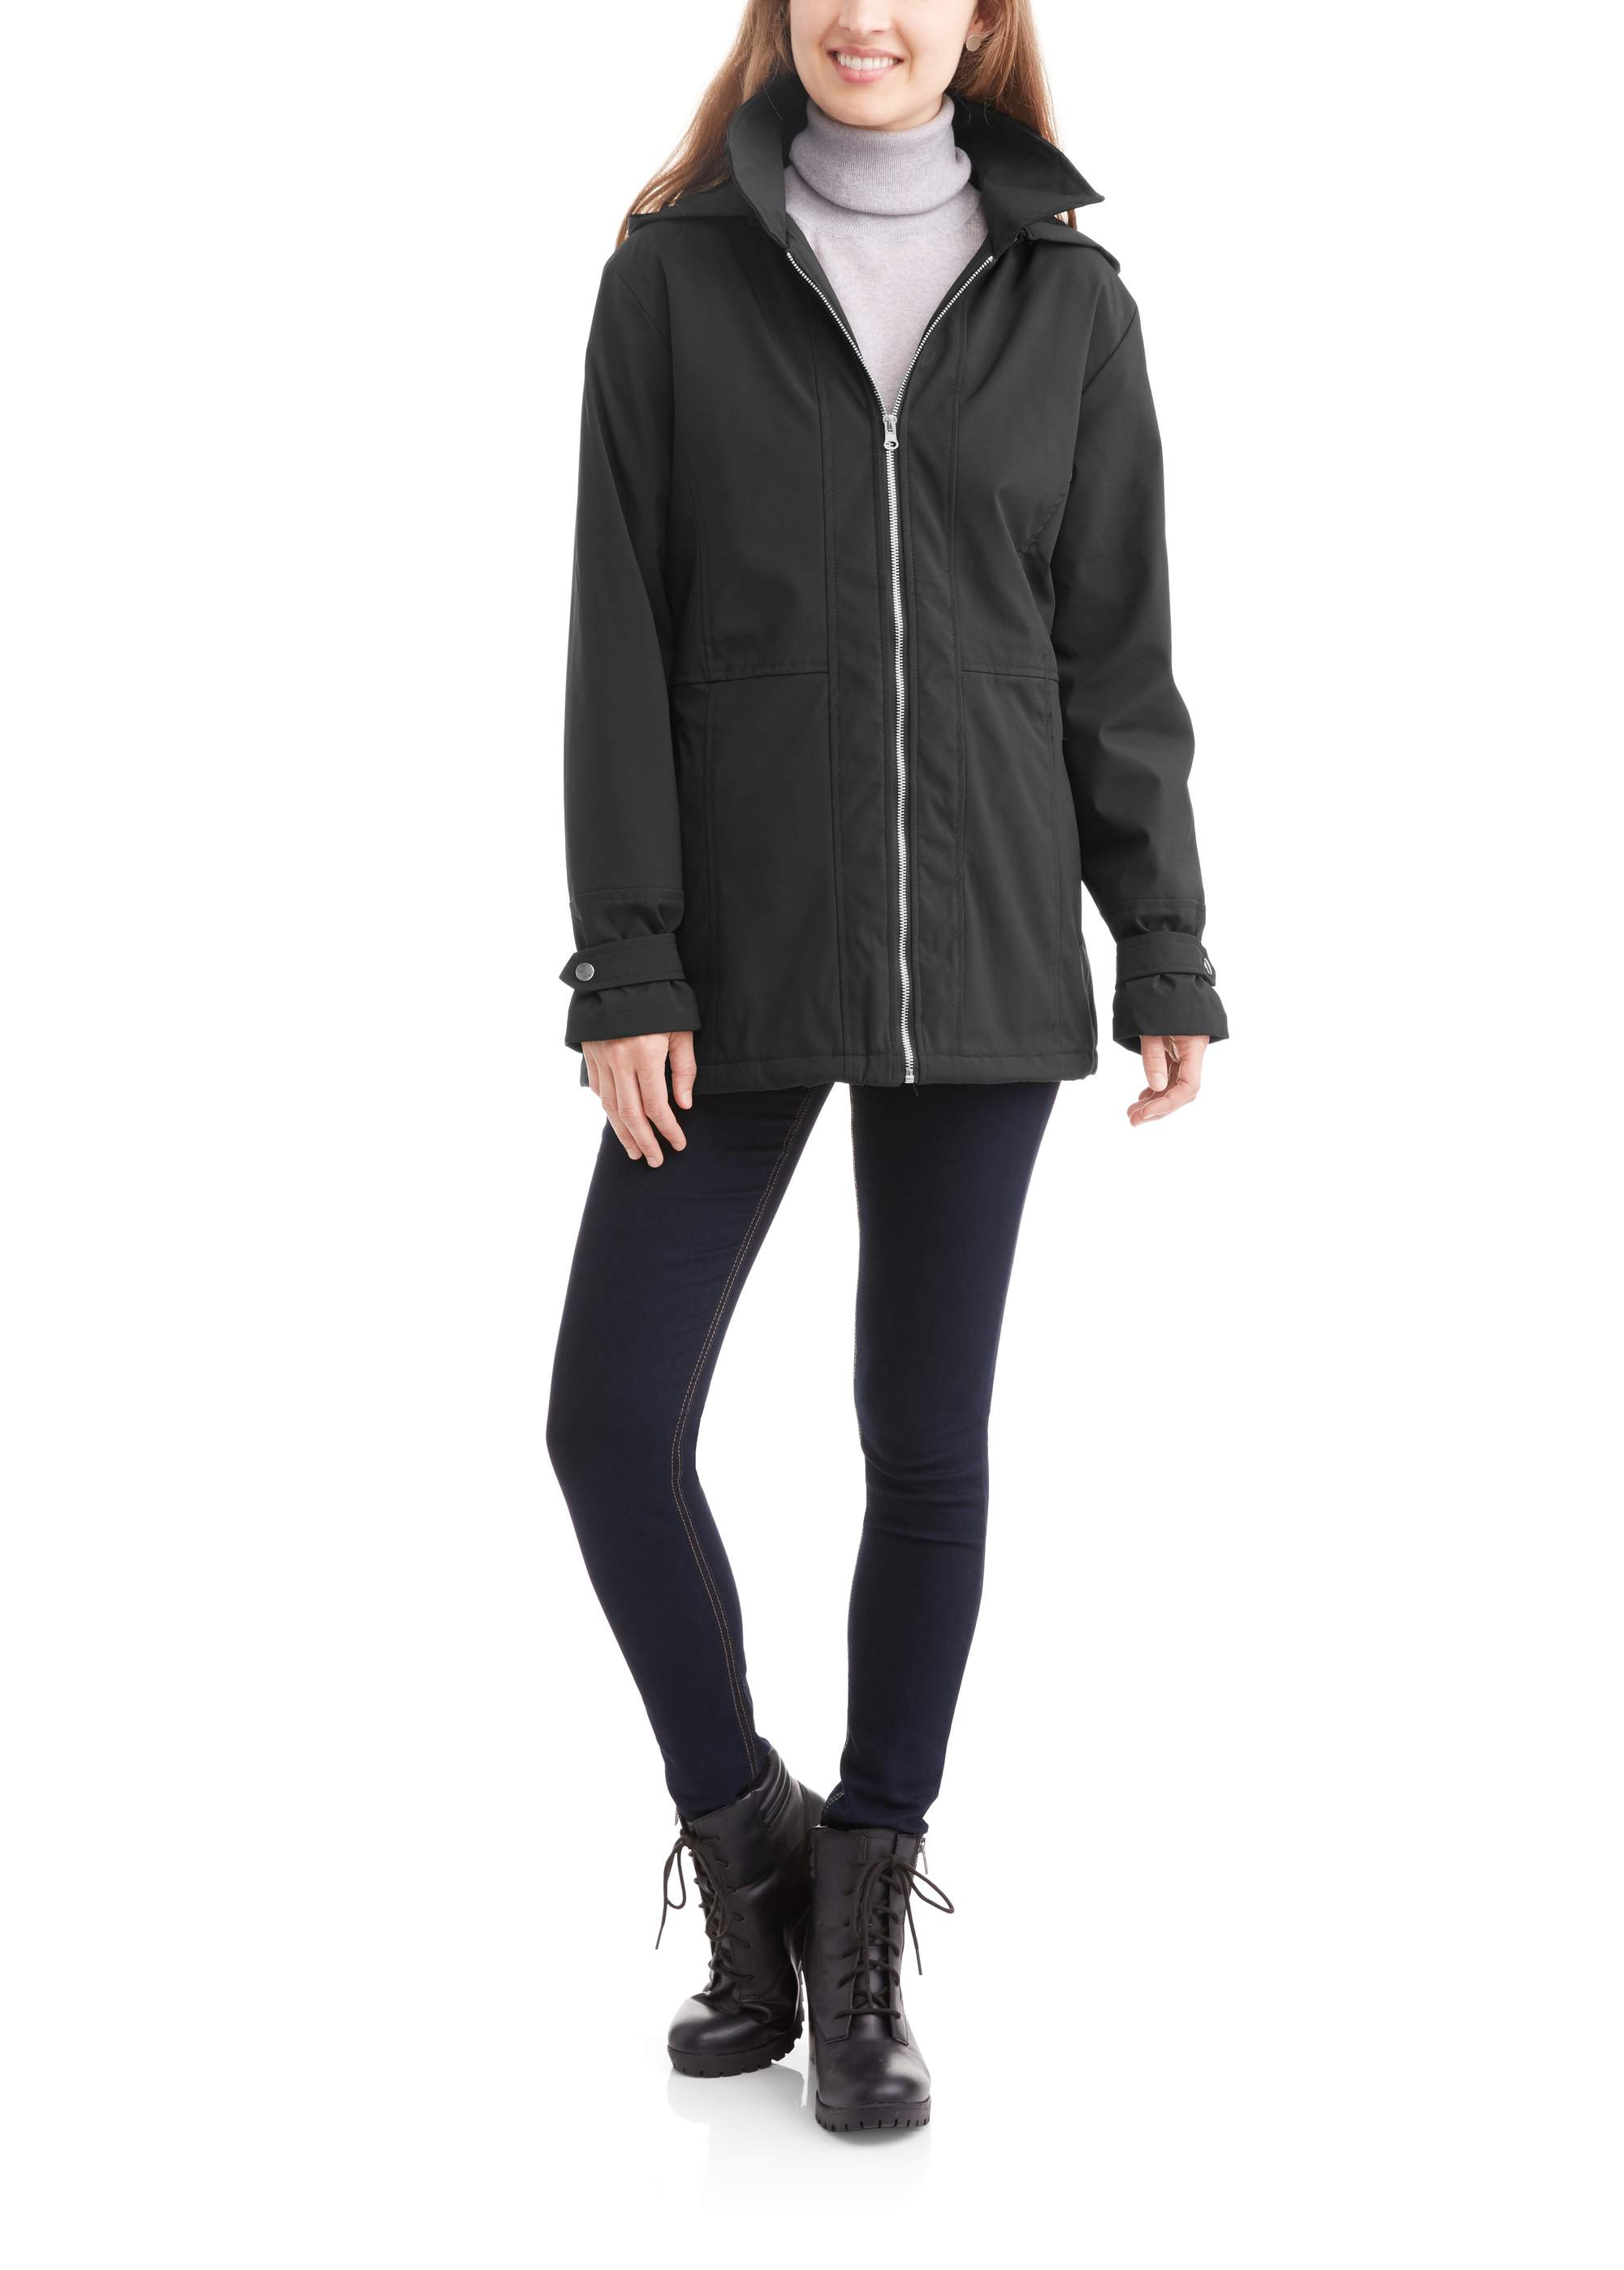 Women's Bonded Soft-Shell Rain Jacket